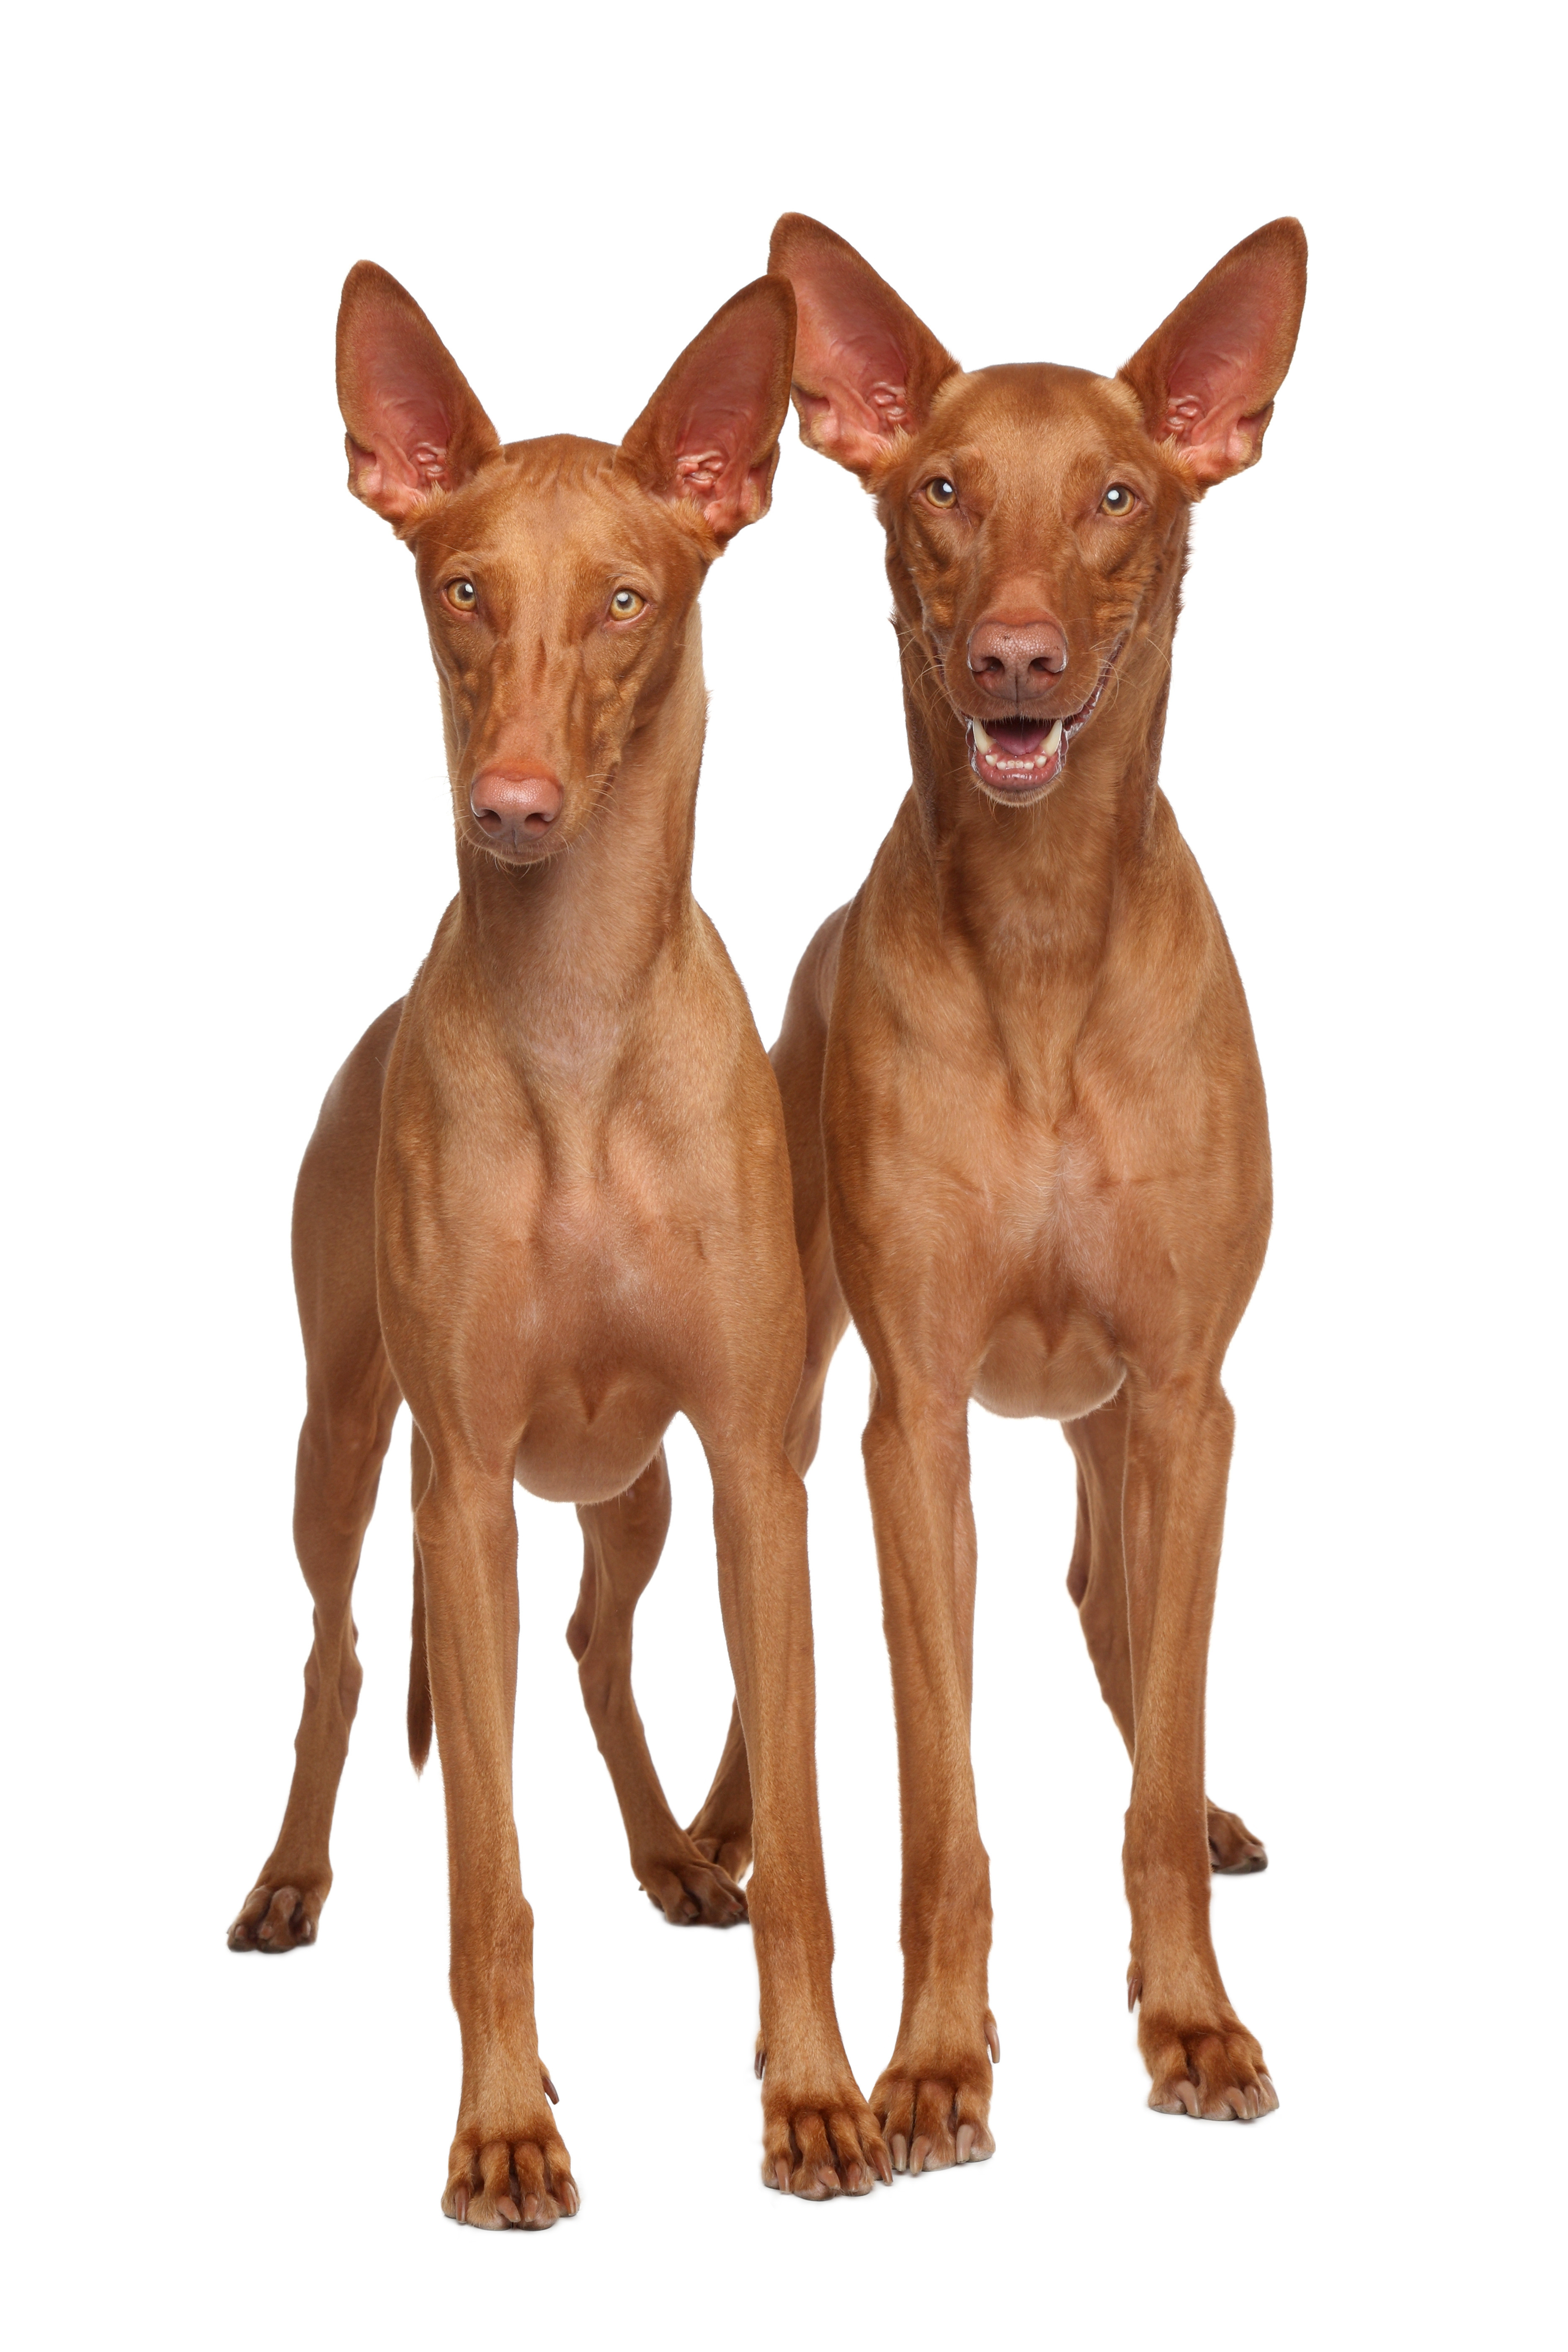 Two Pharaoh Hounds on white background